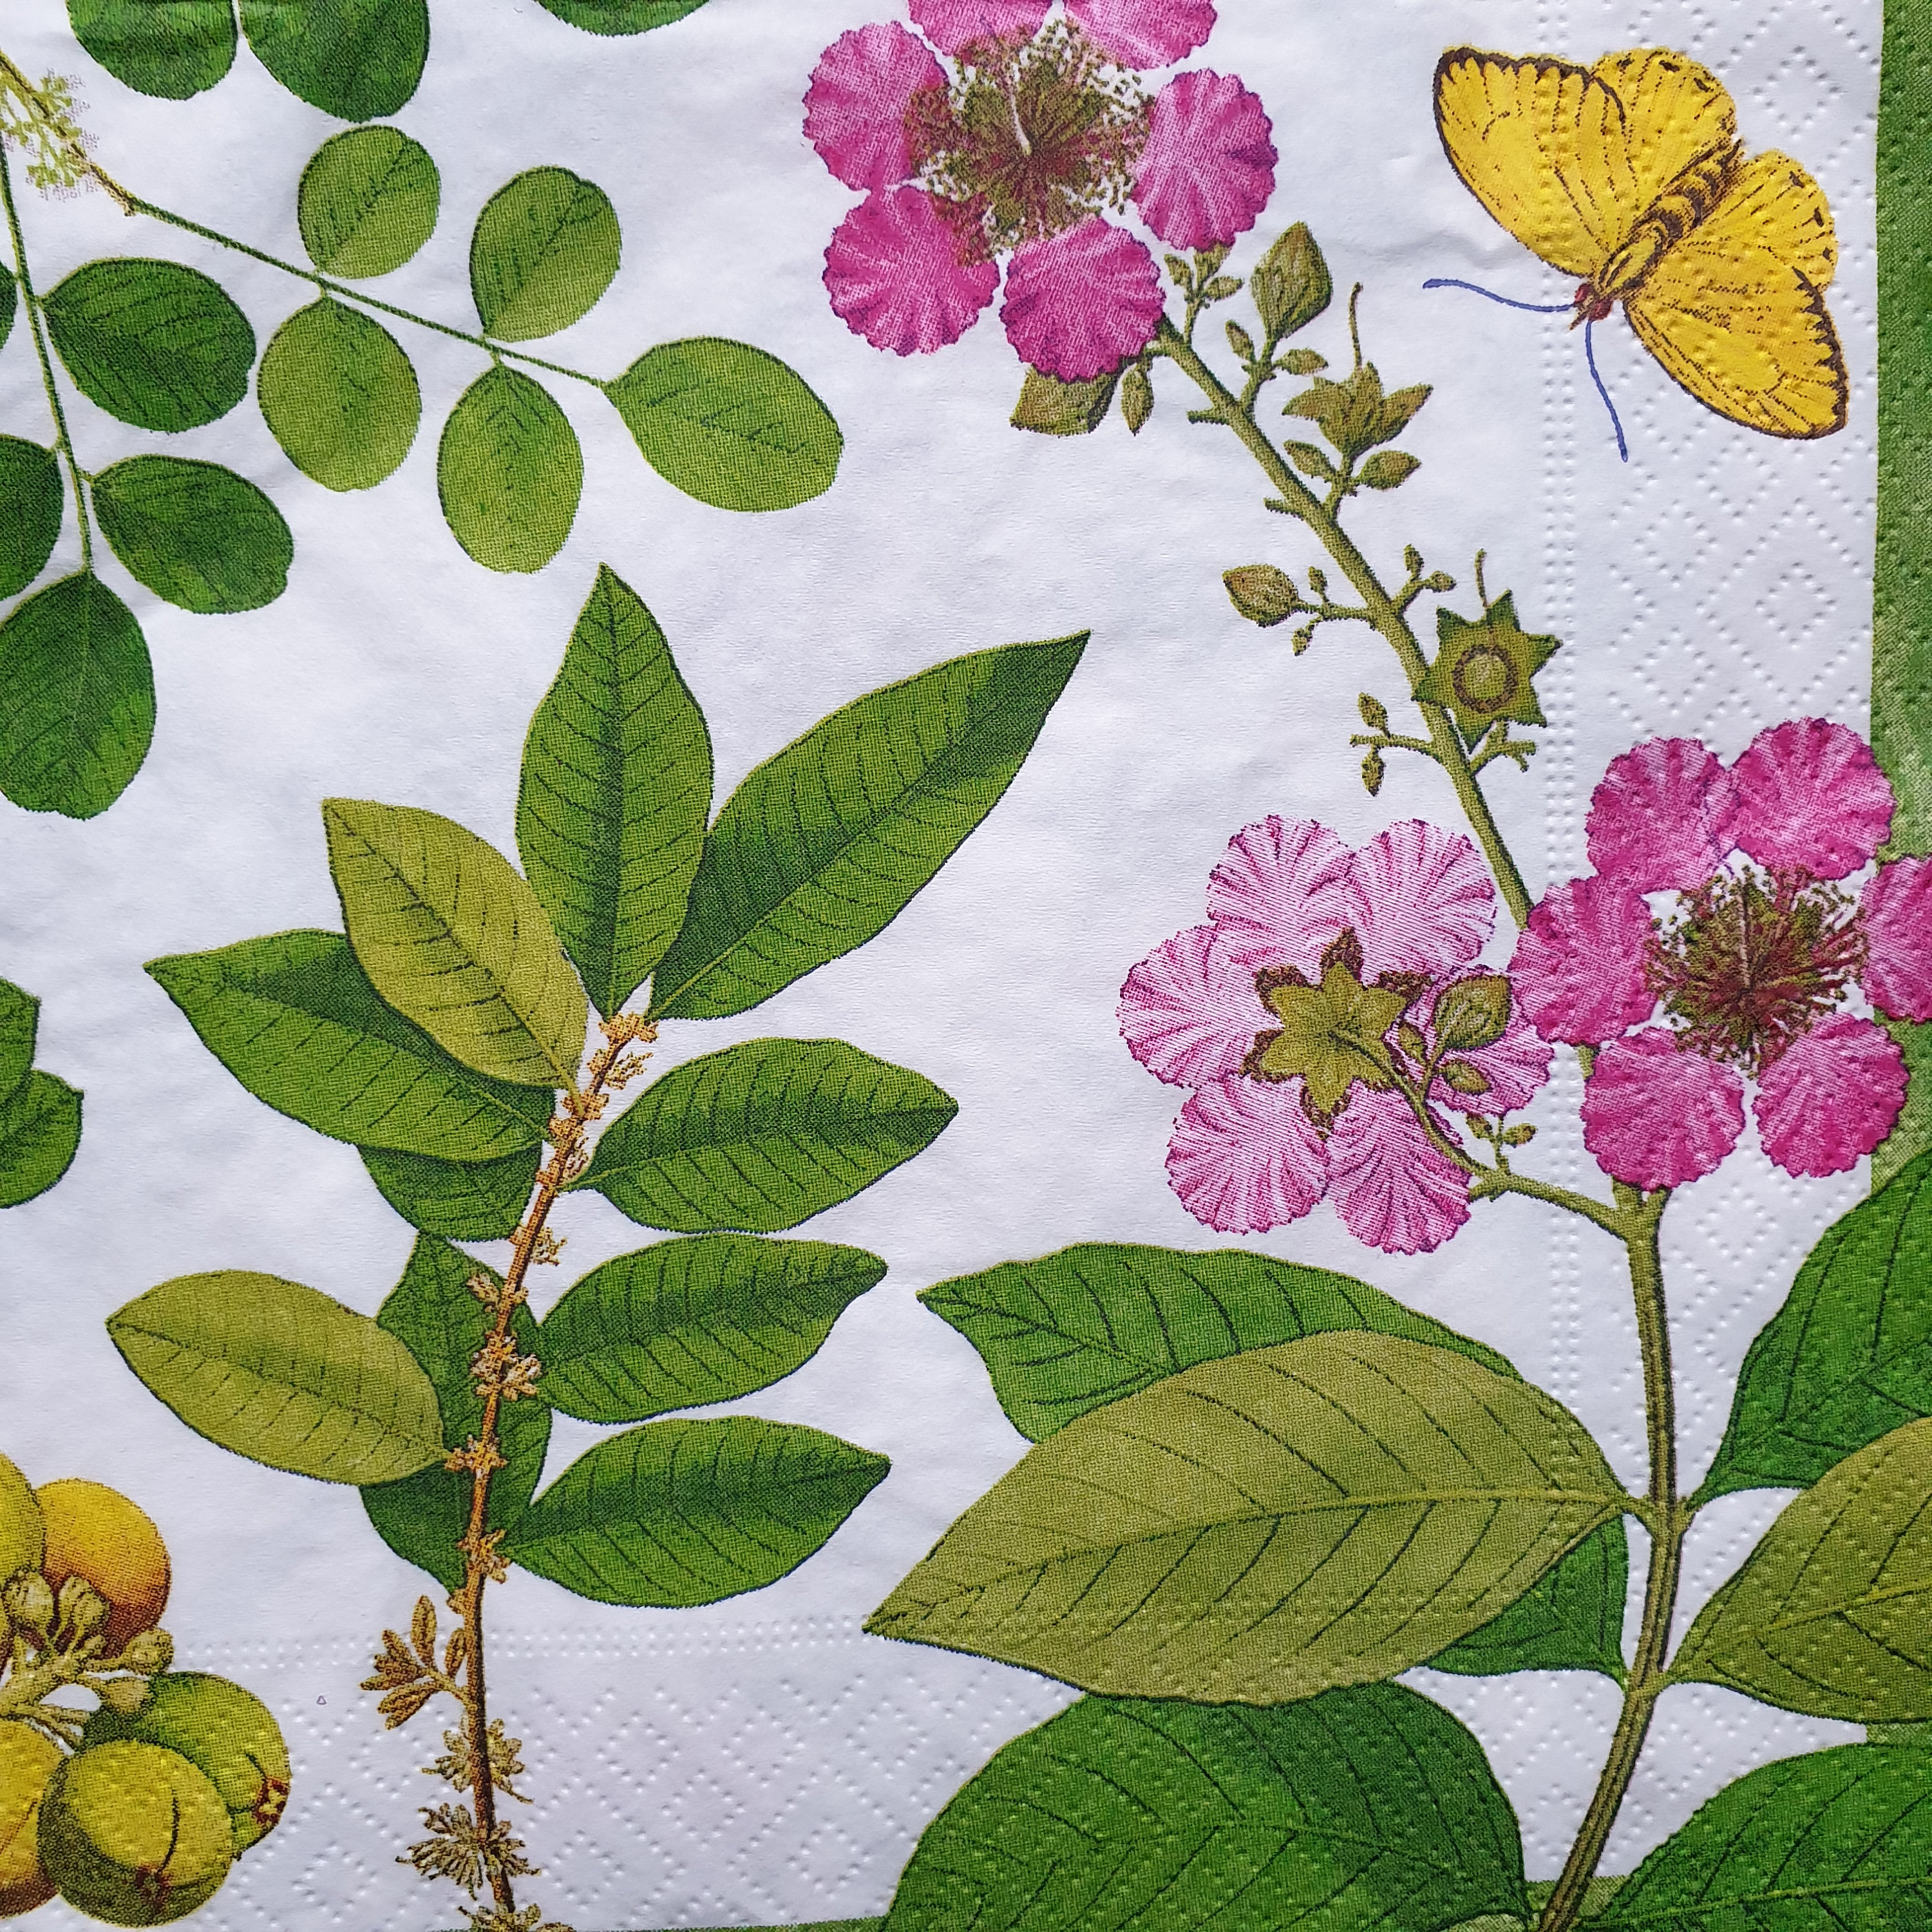 4 Vintage Paper Napkins for Decoupage Lunch Decopatch Craft Party Time Celebrate